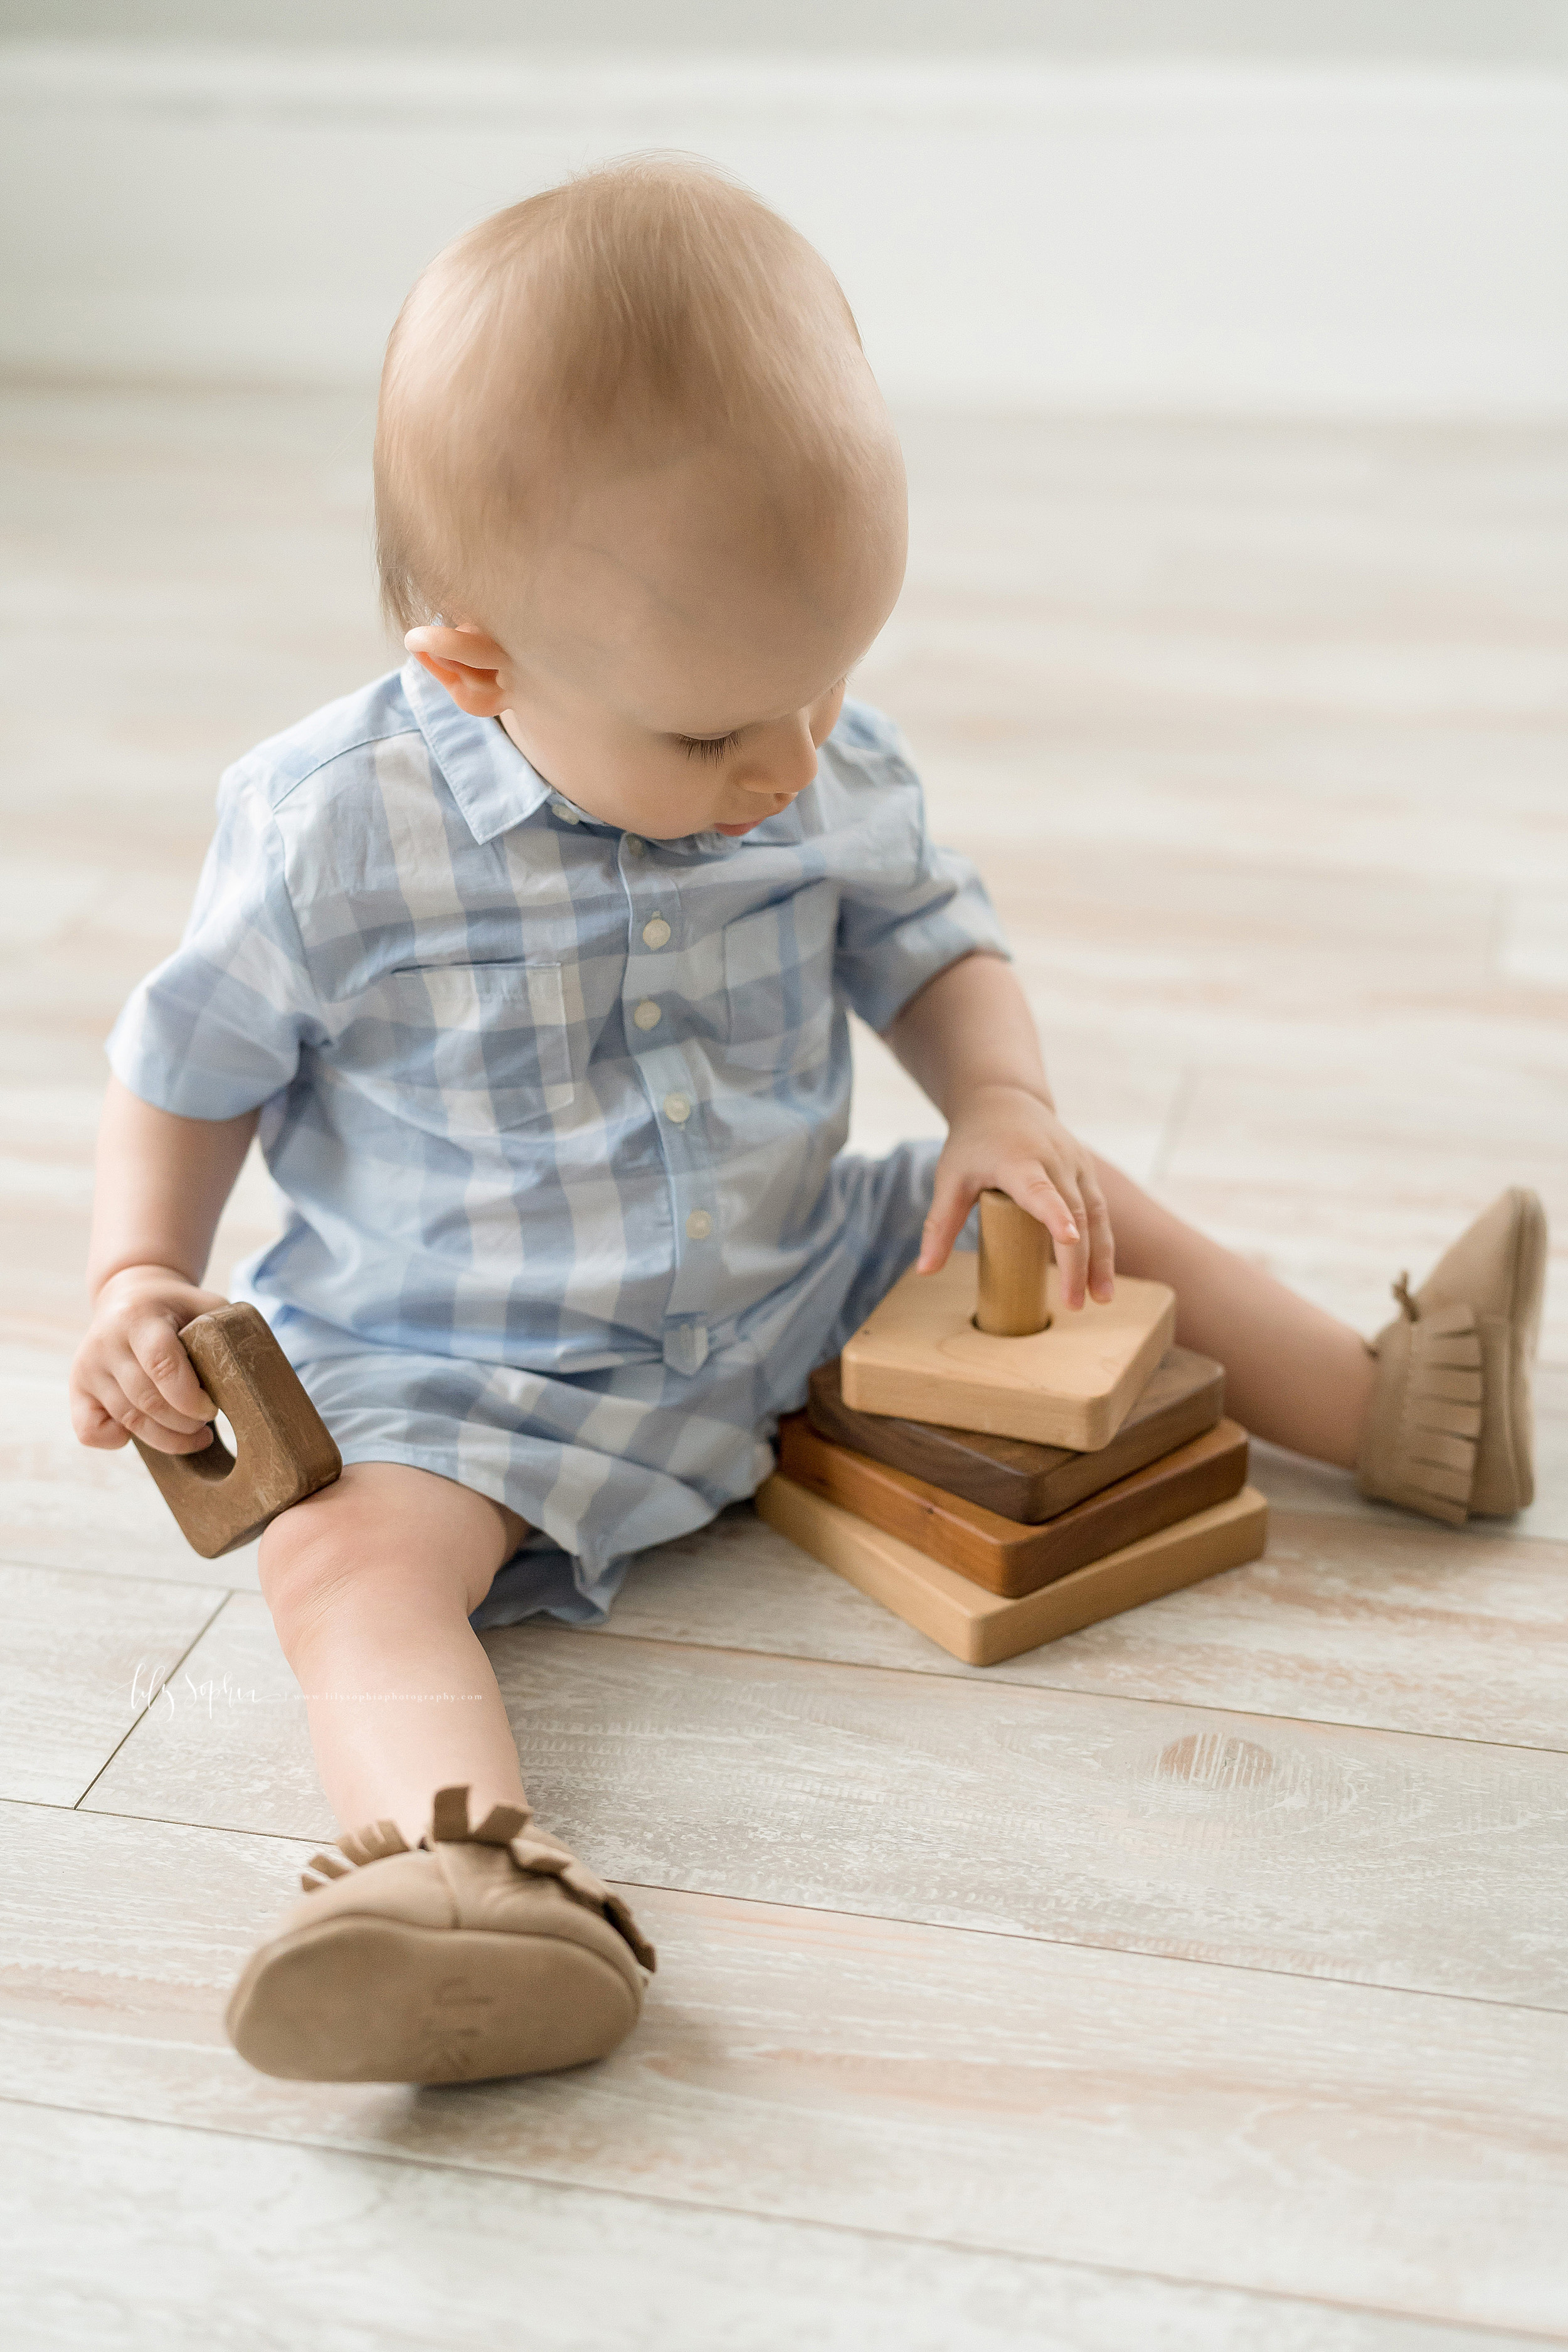 Photo of a one year old little boy playing with a wooden toy taken by Lily Sophia Photography in a natural light studio in Atlanta. The little boy is wearing a blue and white plaid shirt and shorts. He is sitting on the wooden floor with his legs spread apart and tan leather moccasins on his feet. The wooden stacking toy is between his legs. He has one of the stacking pieces in his right hand and he is holding the stacking tower on the floor with his left hand.